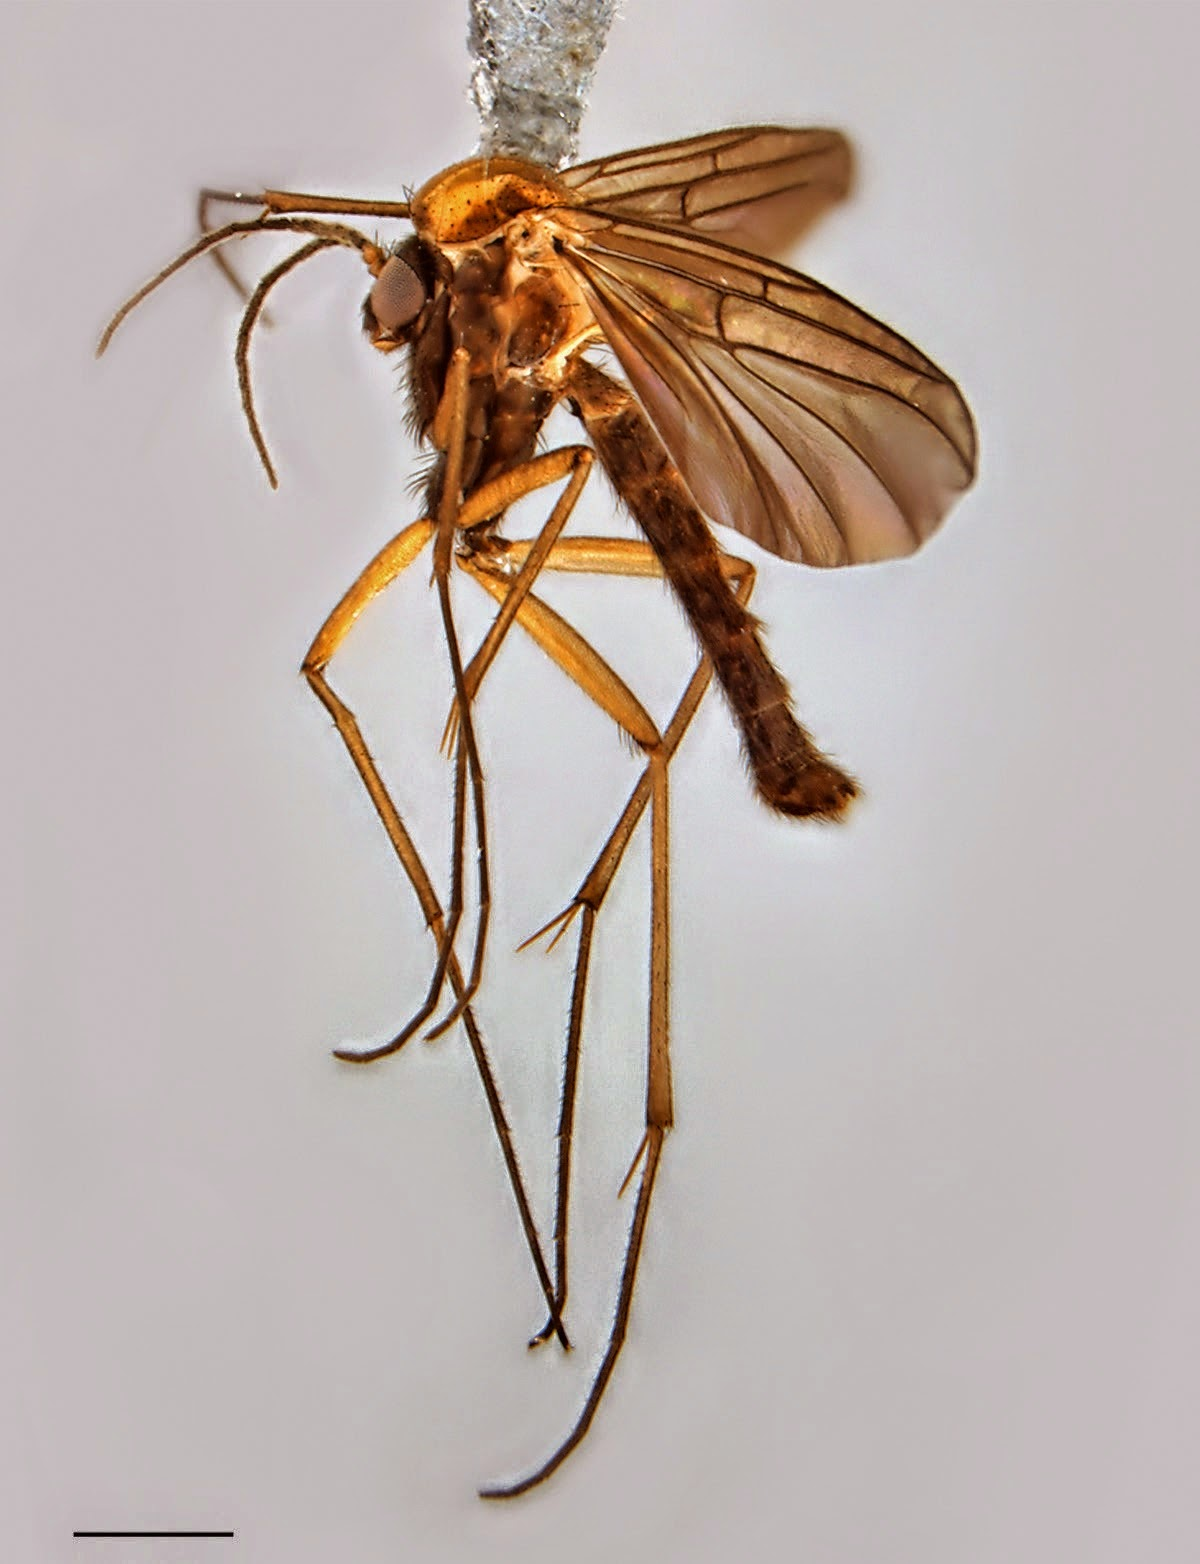 http://sciencythoughts.blogspot.co.uk/2014/12/a-new-species-of-fungus-gnat-from-giant.html